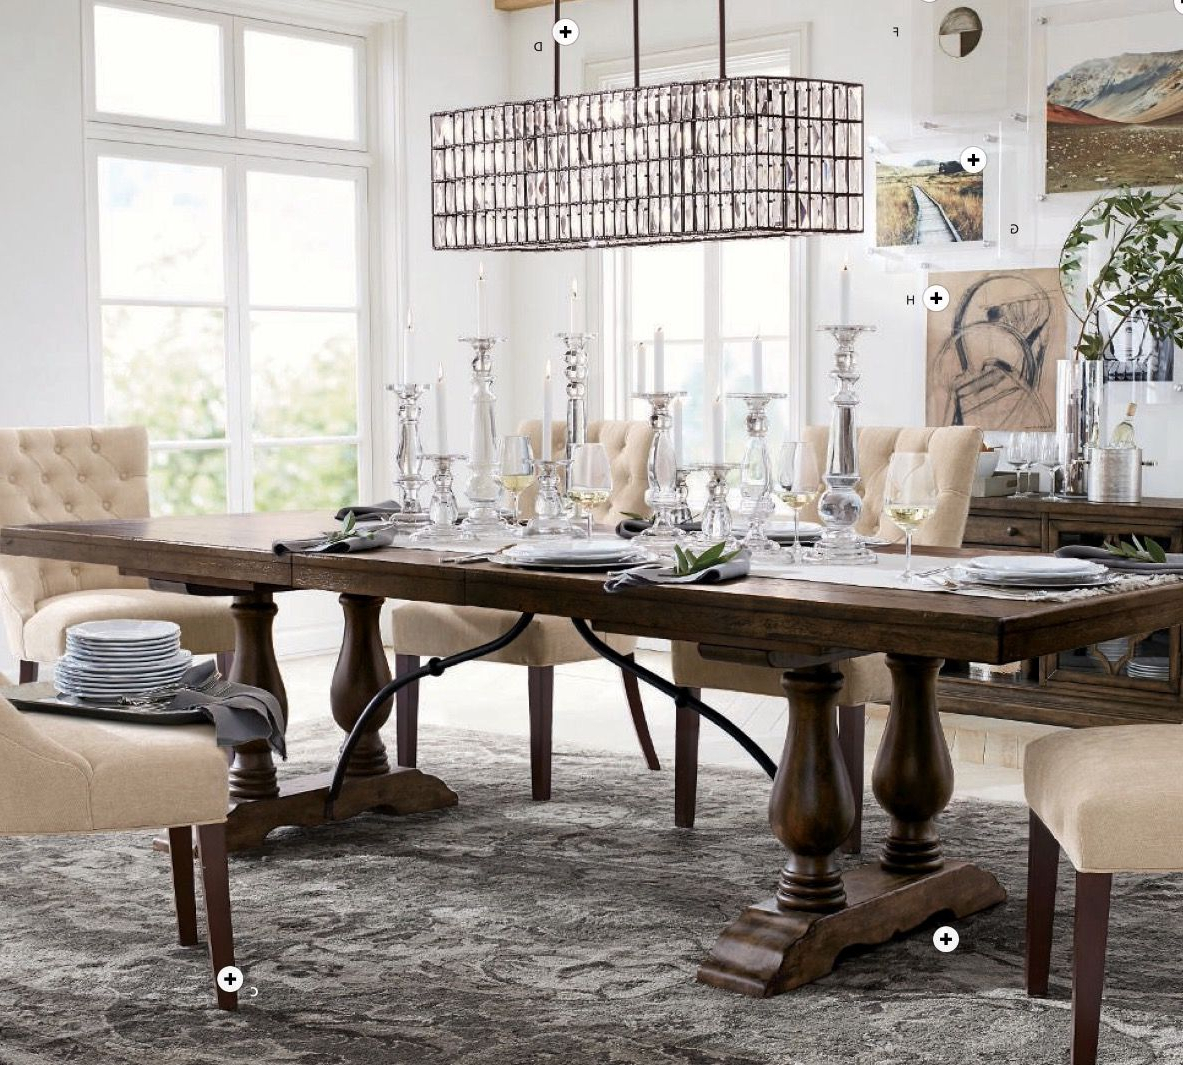 Hewn Oak Lorraine Extending Dining Tables within Trendy Lorraine Dining Table In Hewn Oak, Hayes Tufted Chairs In